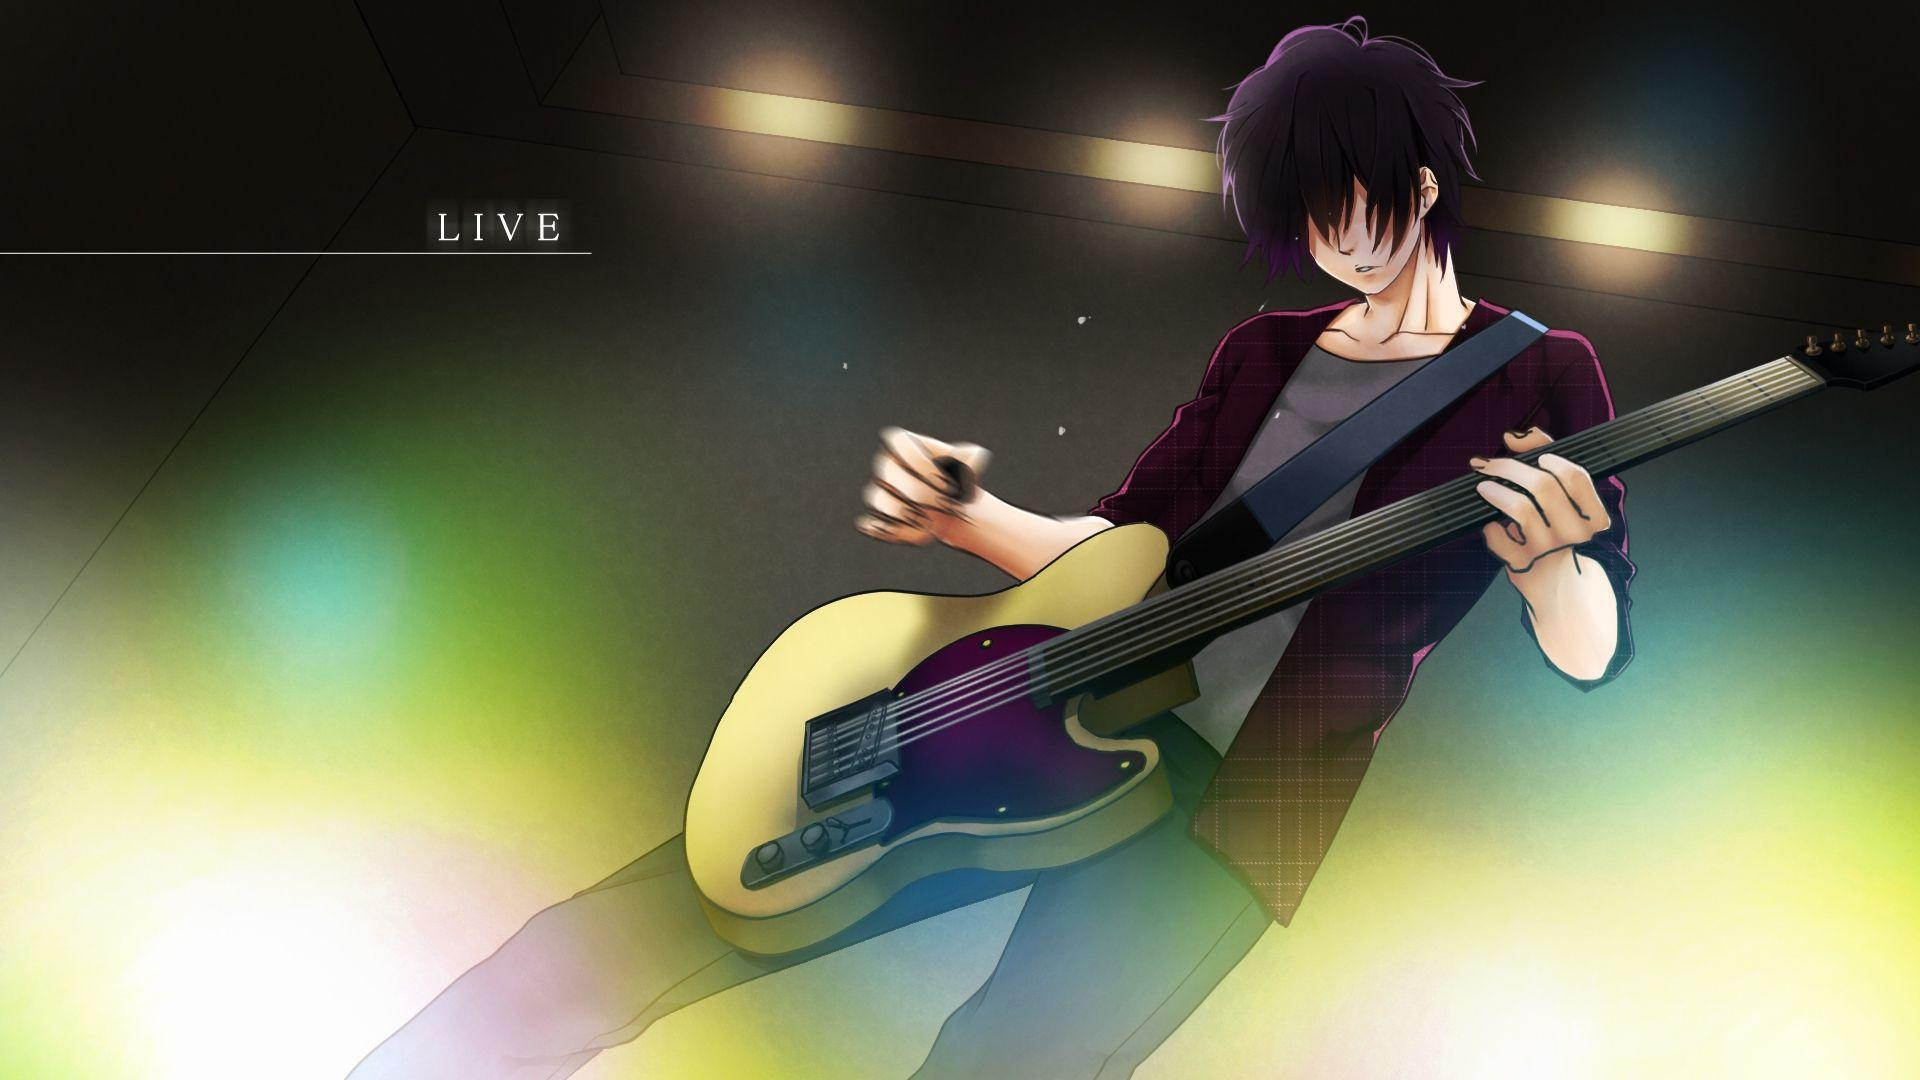 Fresh anime boy with guitar wallpaper anime wp